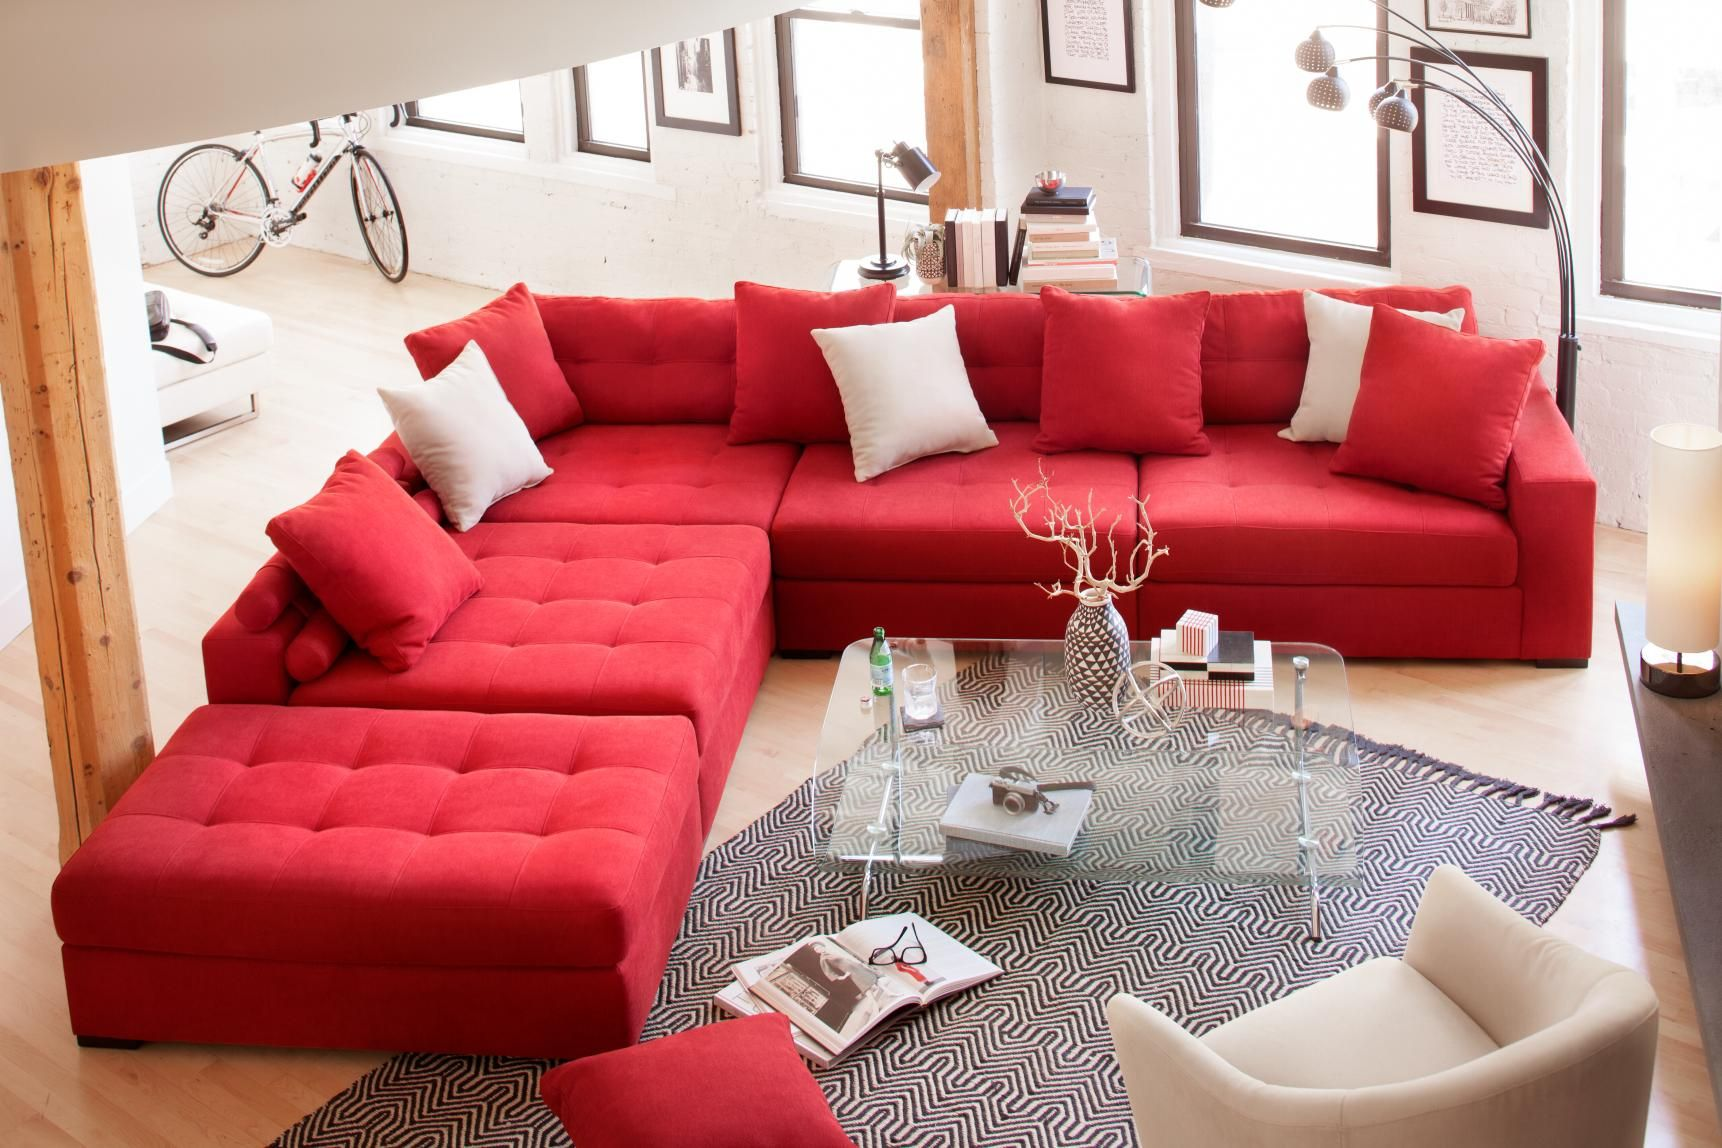 Durable Versatile And Most Importantly Big We Call It Big Red Our Venti Sectional I Red Couch Living Room Red Sofa Living Room Red Sectional Living Room #red #living #room #furniture #sets